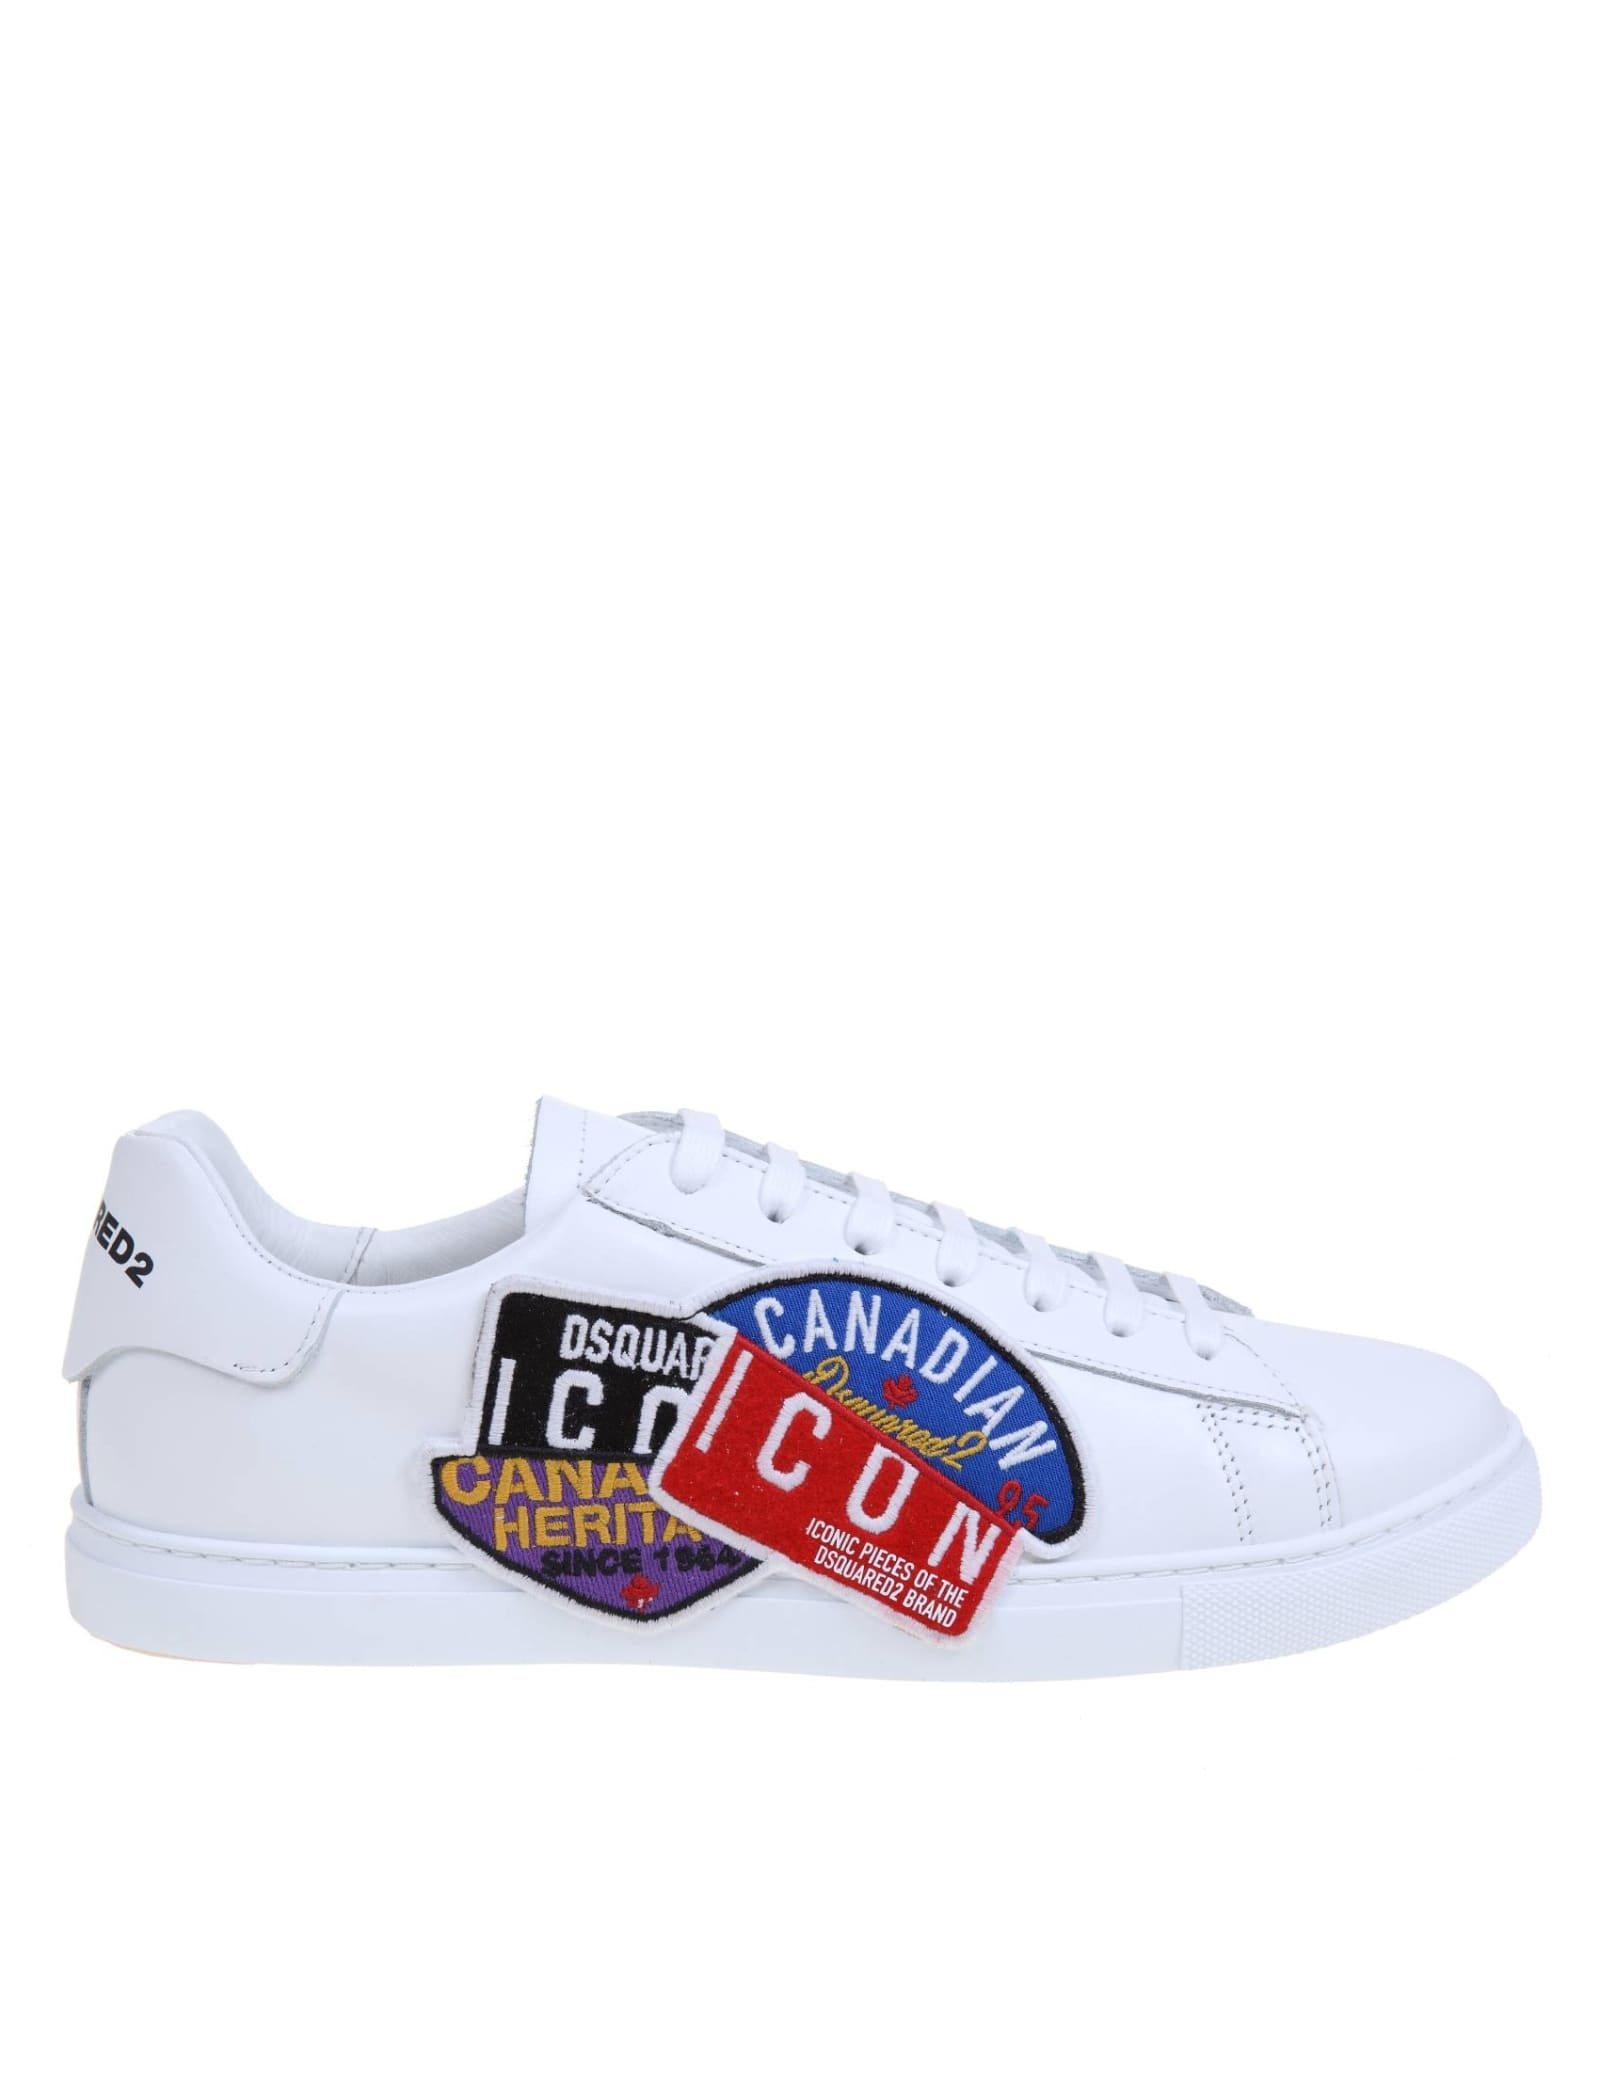 Dsquared2 Leathers DSQUARED NEW TENNIS SNEAKERS IN LEATHER WITH ICON PATCH